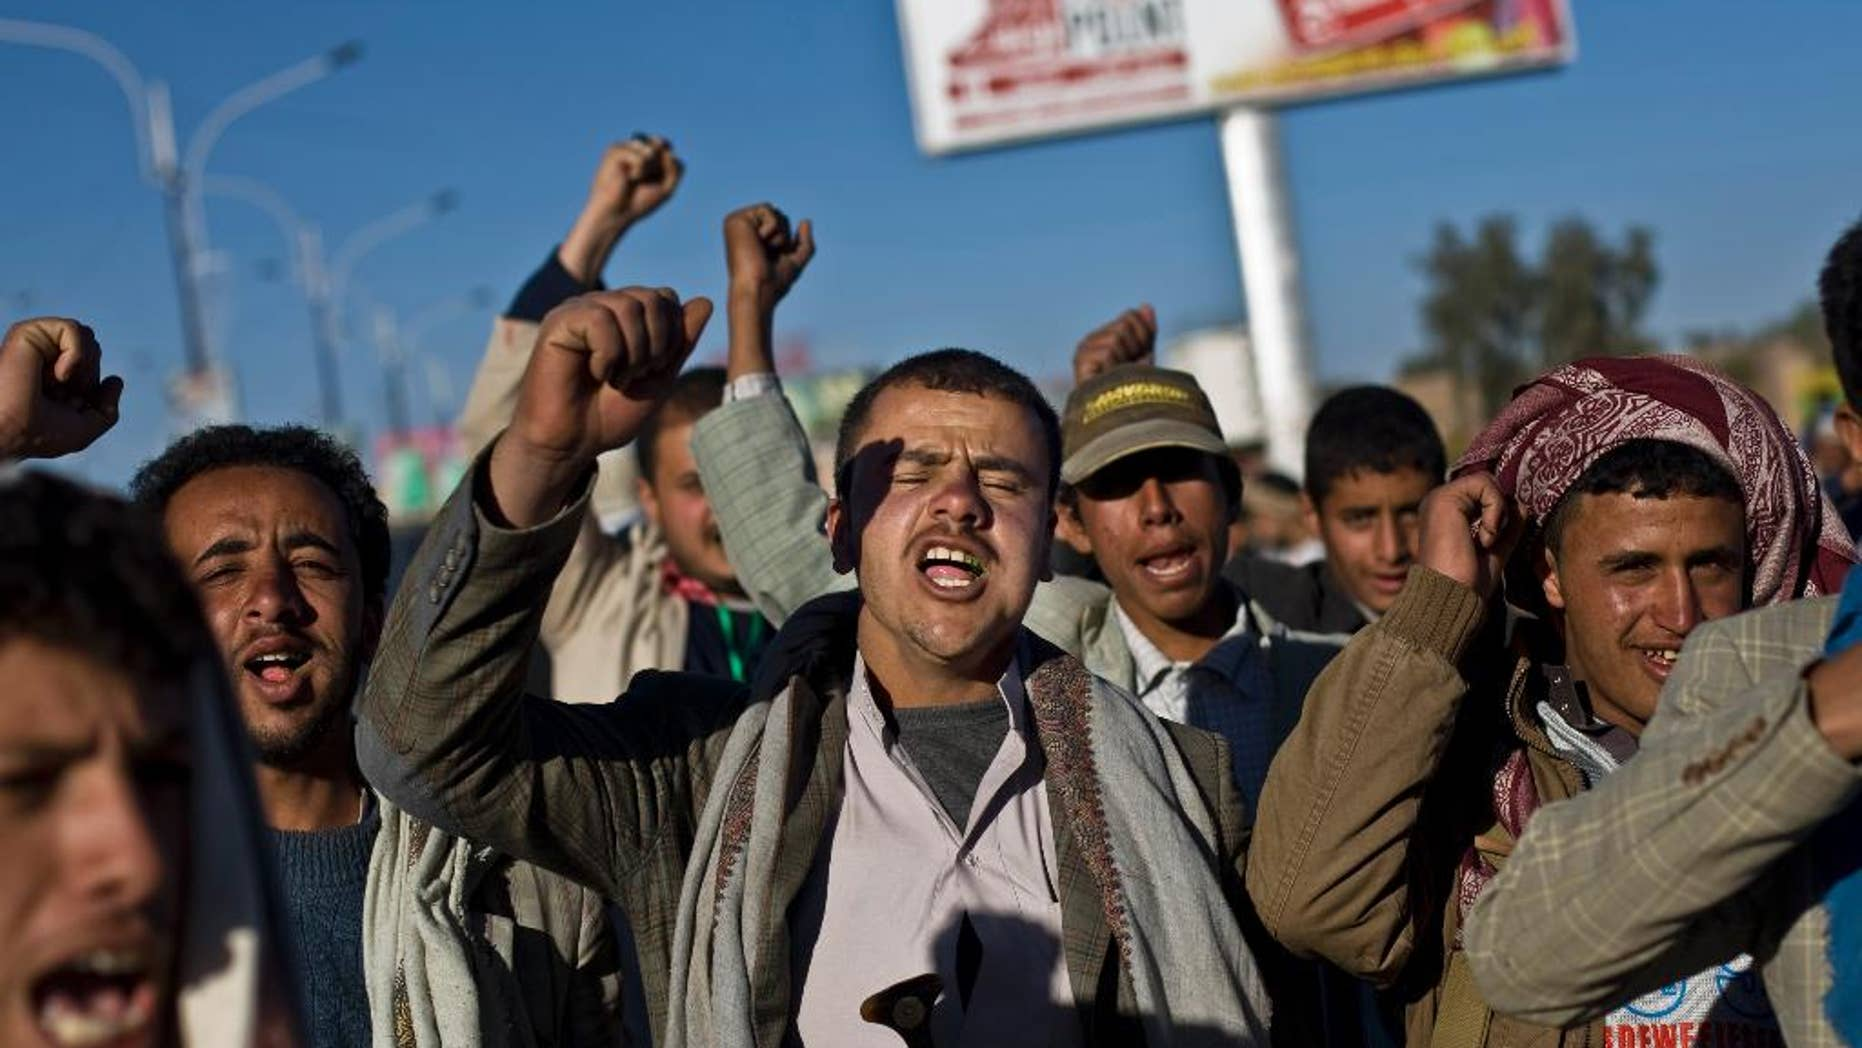 Houthi Shiite Yemenis chant slogans during a rally to show support for their comrades, in Sanaa, Yemen, Wednesday, Jan. 28, 2015. (AP Photo/Hani Mohammed)